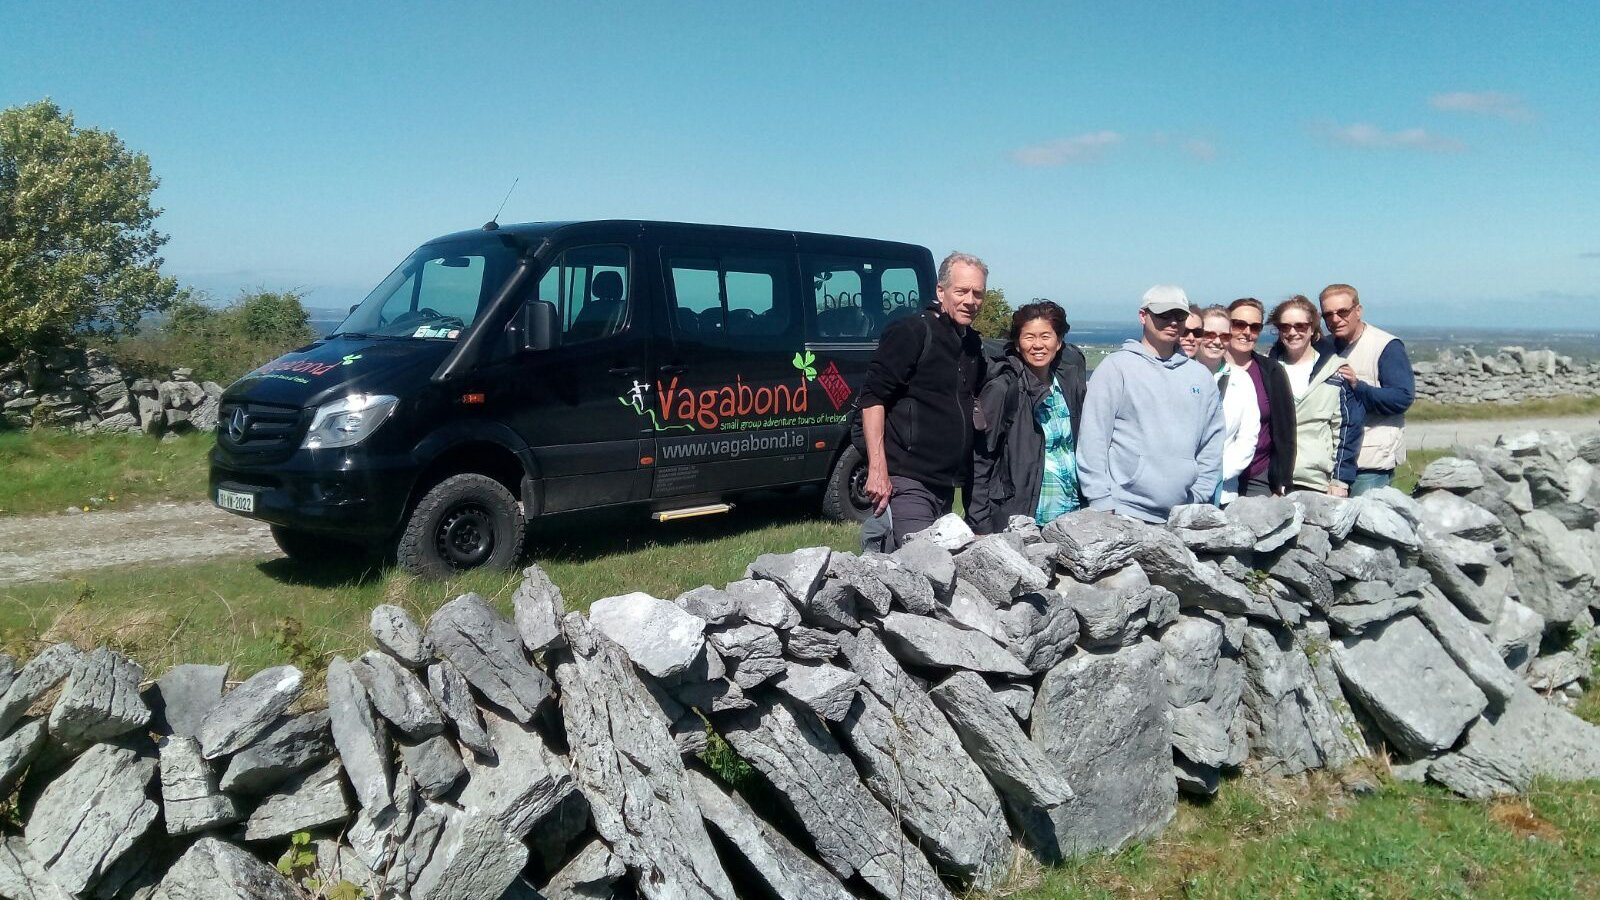 Vagabond group behind a dry stone wall in the Burren, Clare